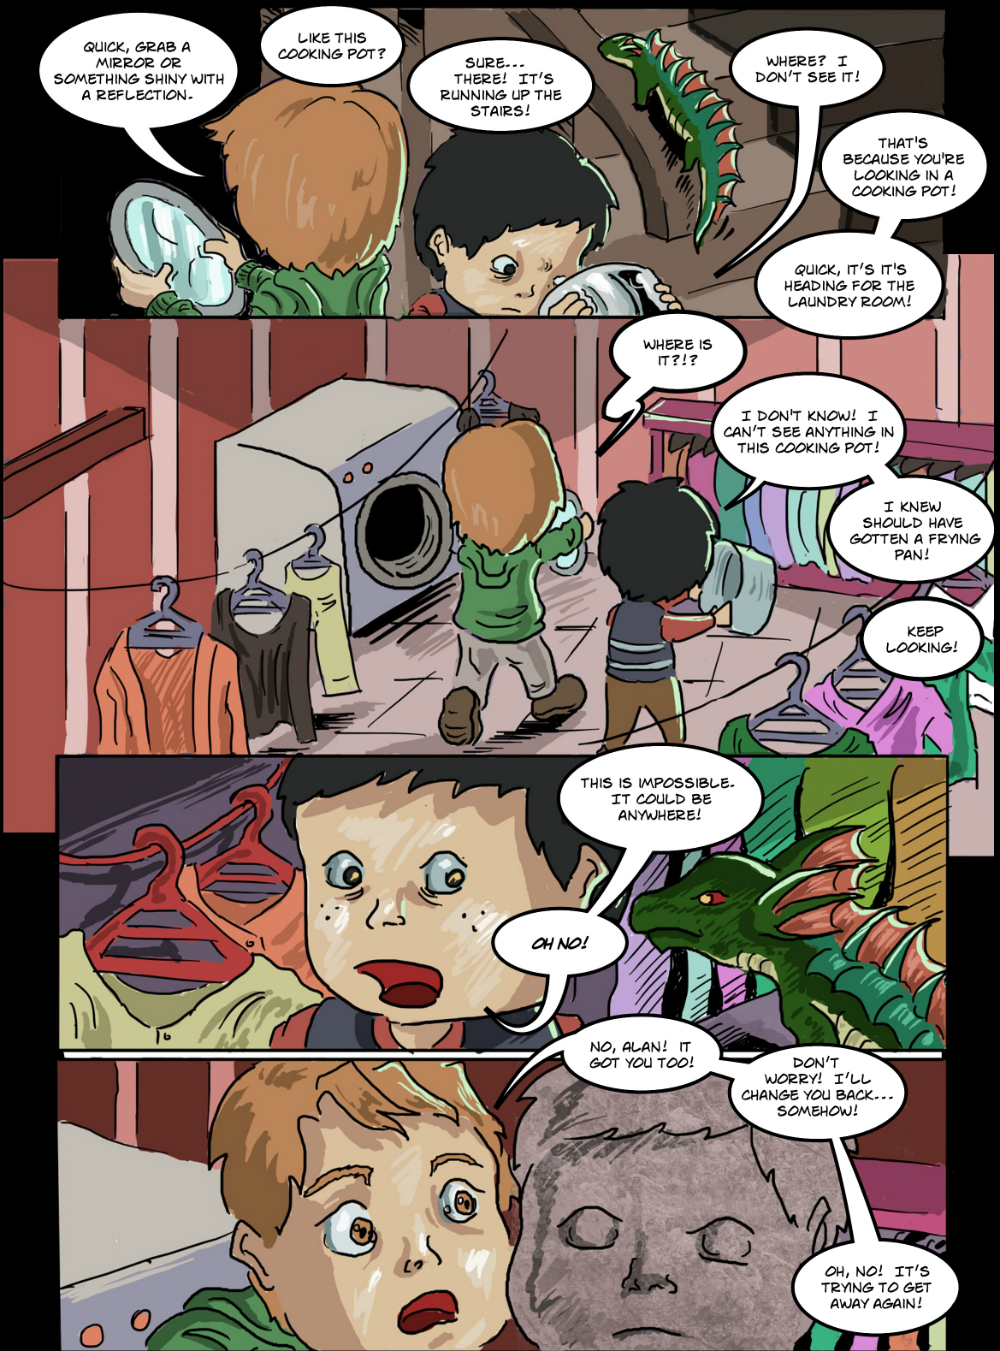 BASILISK IN THE HOUSE page 9 - story 18 in The Book of Lies